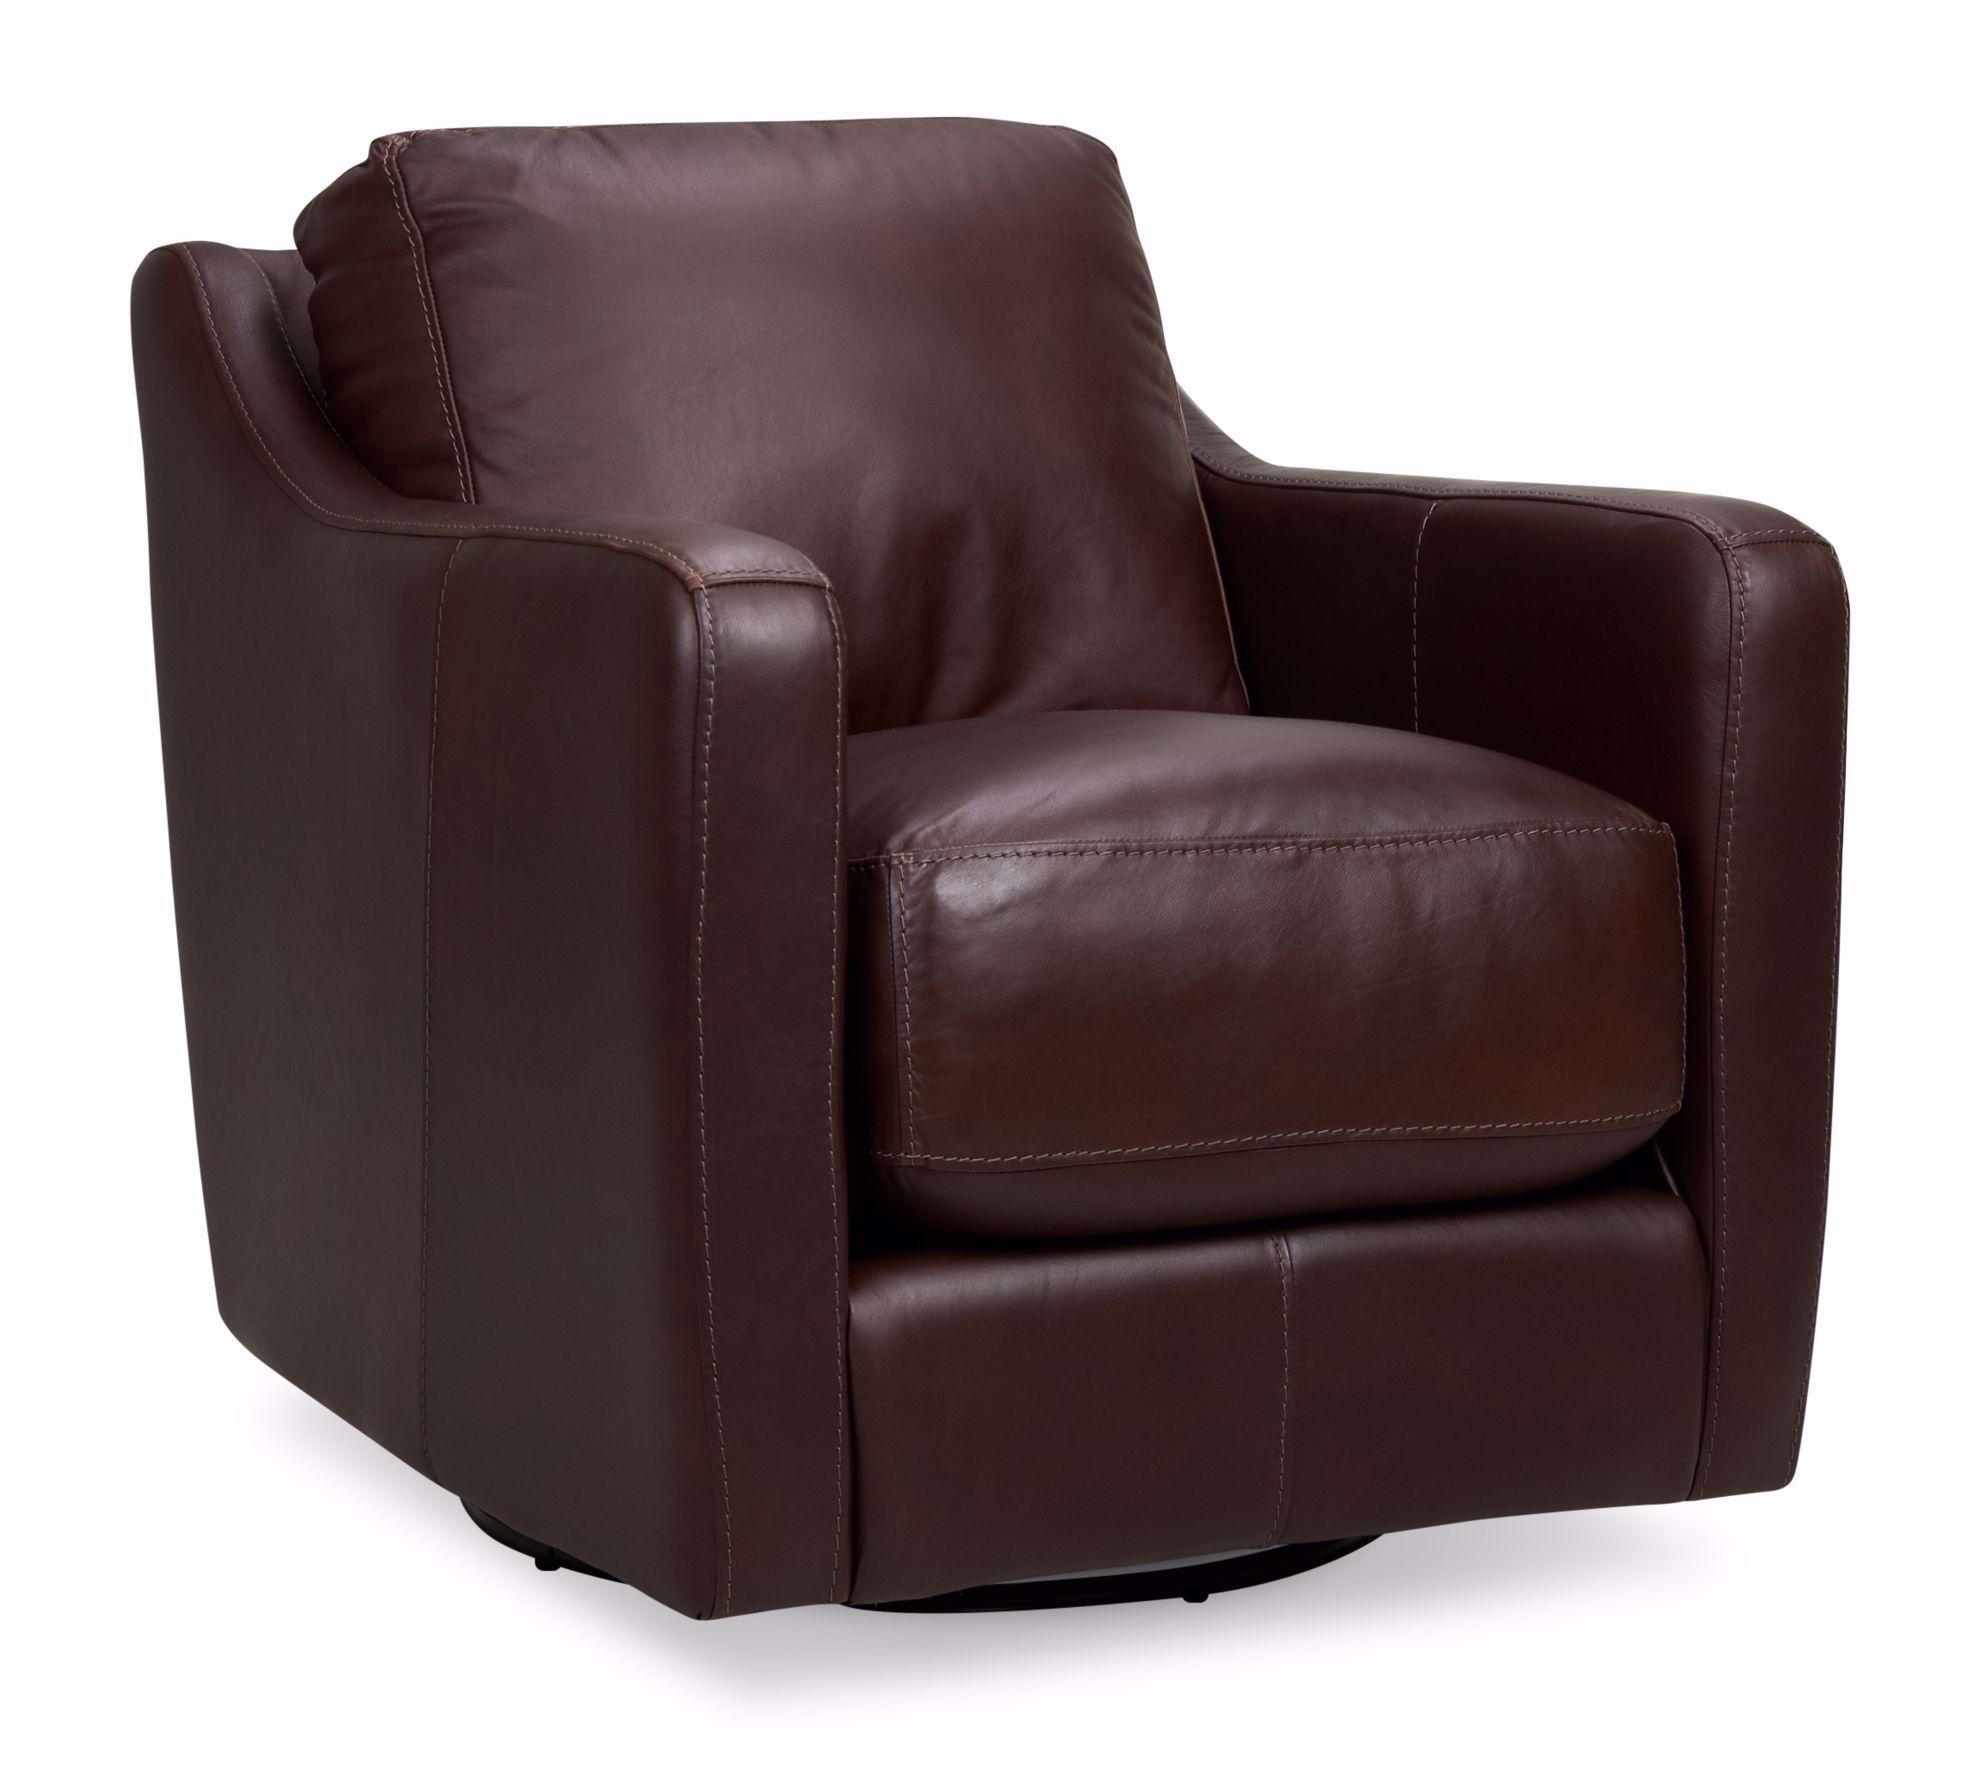 Picture of Chelsea Dark-Brown Swivel Chair